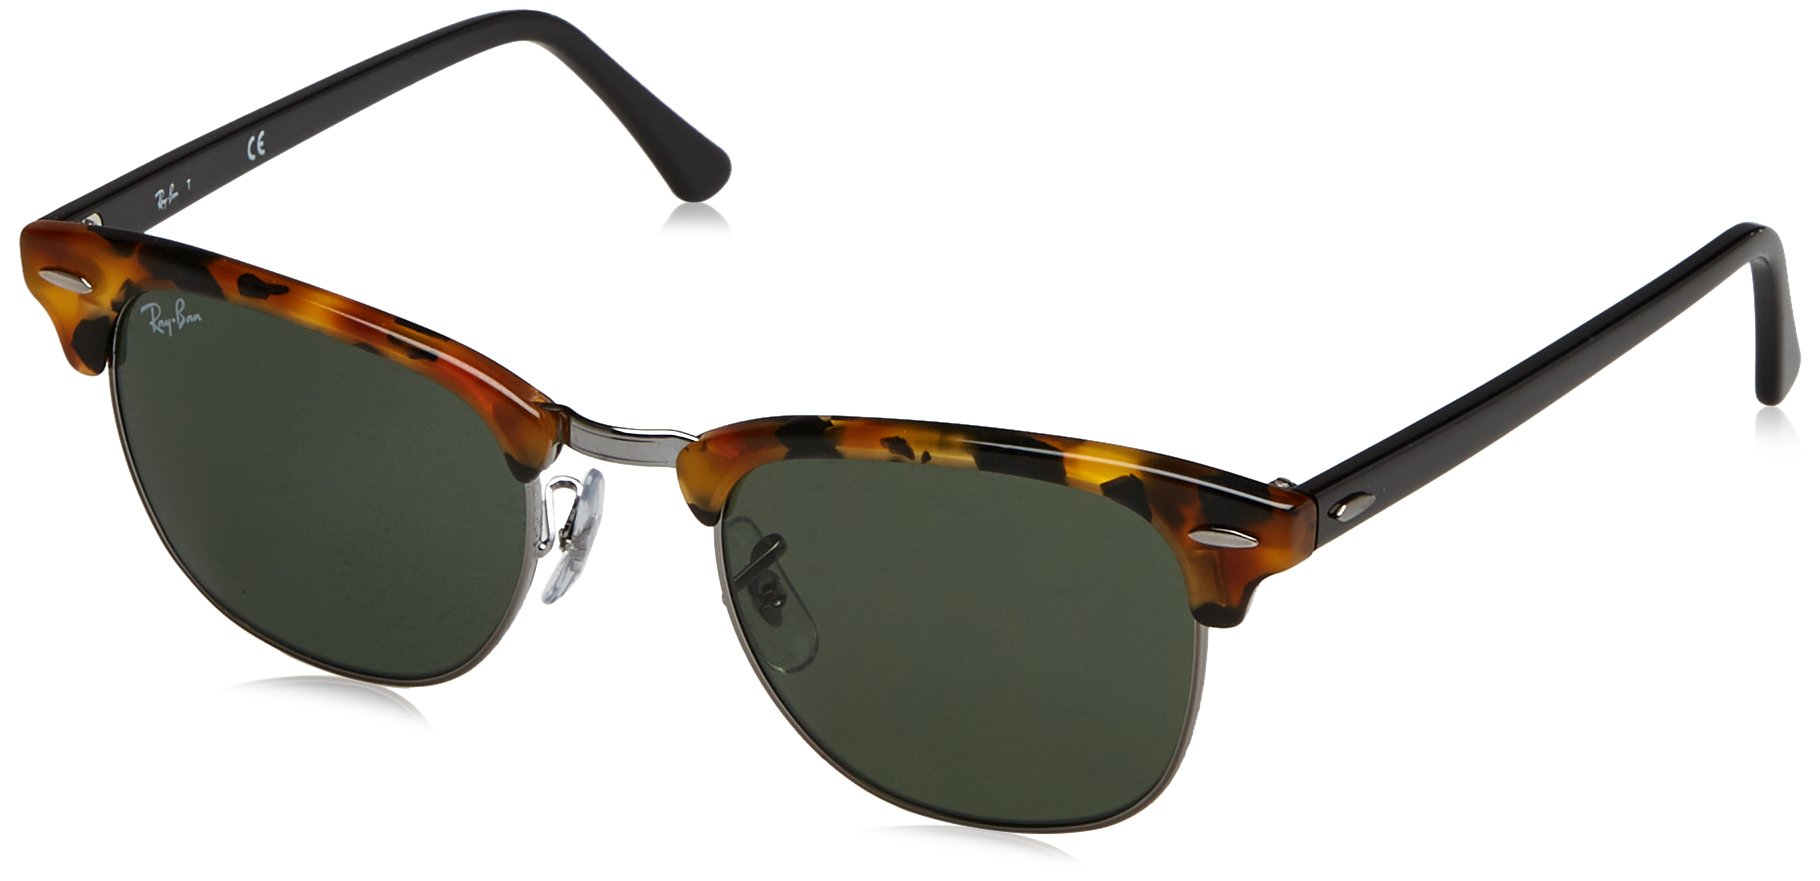 RAY-BAN RB3016 Clubmaster Square Sunglasses, Spotted Black Havana/Green, 49 mm by RAY-BAN